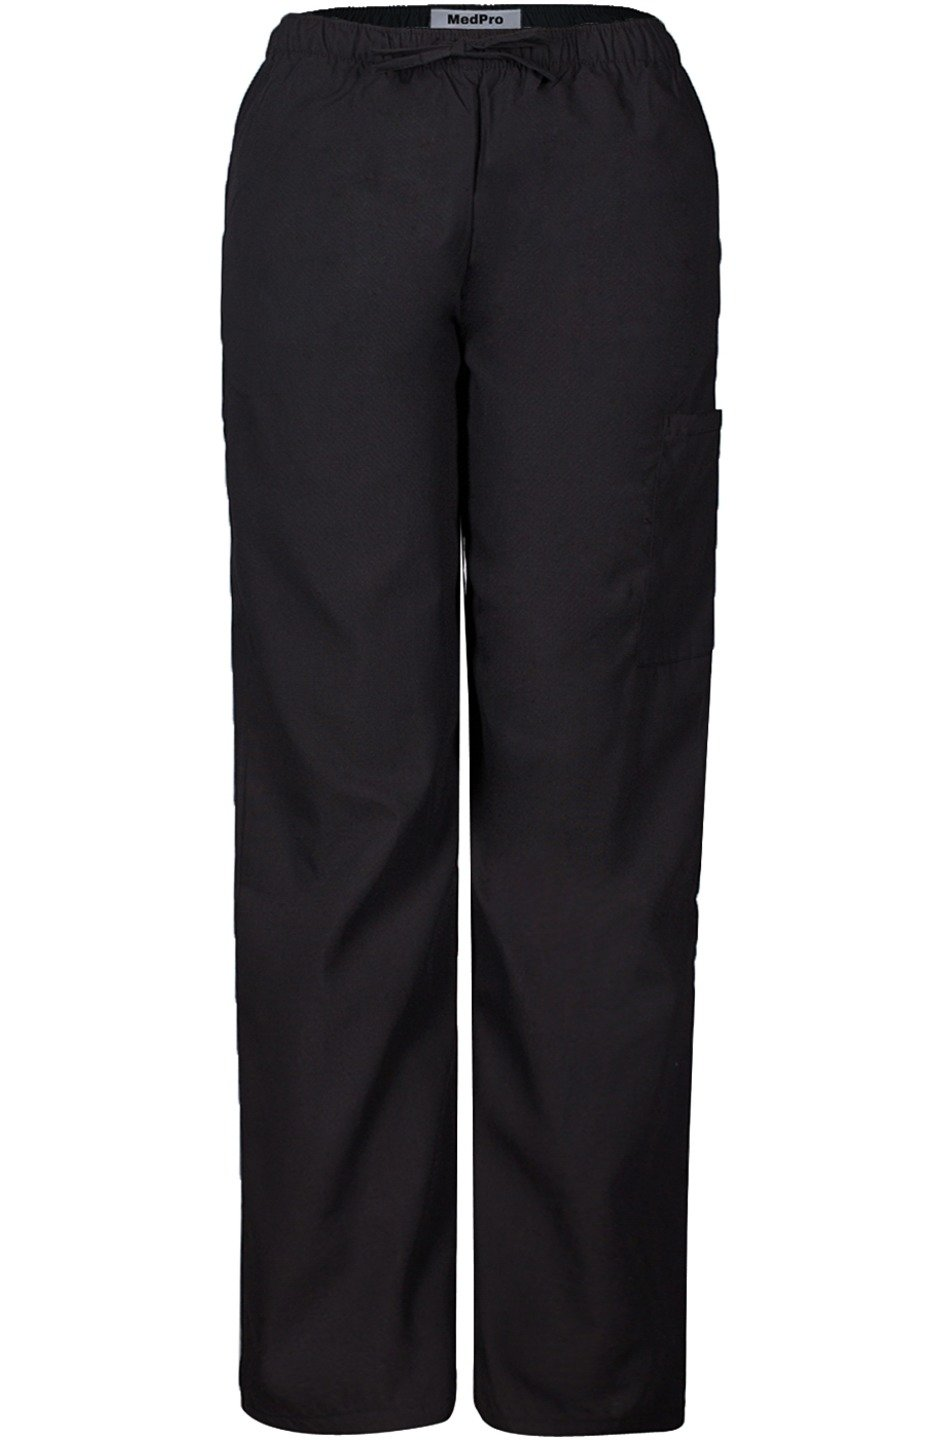 MedPro Women's Medical Scrub Set with V Neck Top and Cargo Pants Black Red XS by MedPro (Image #4)